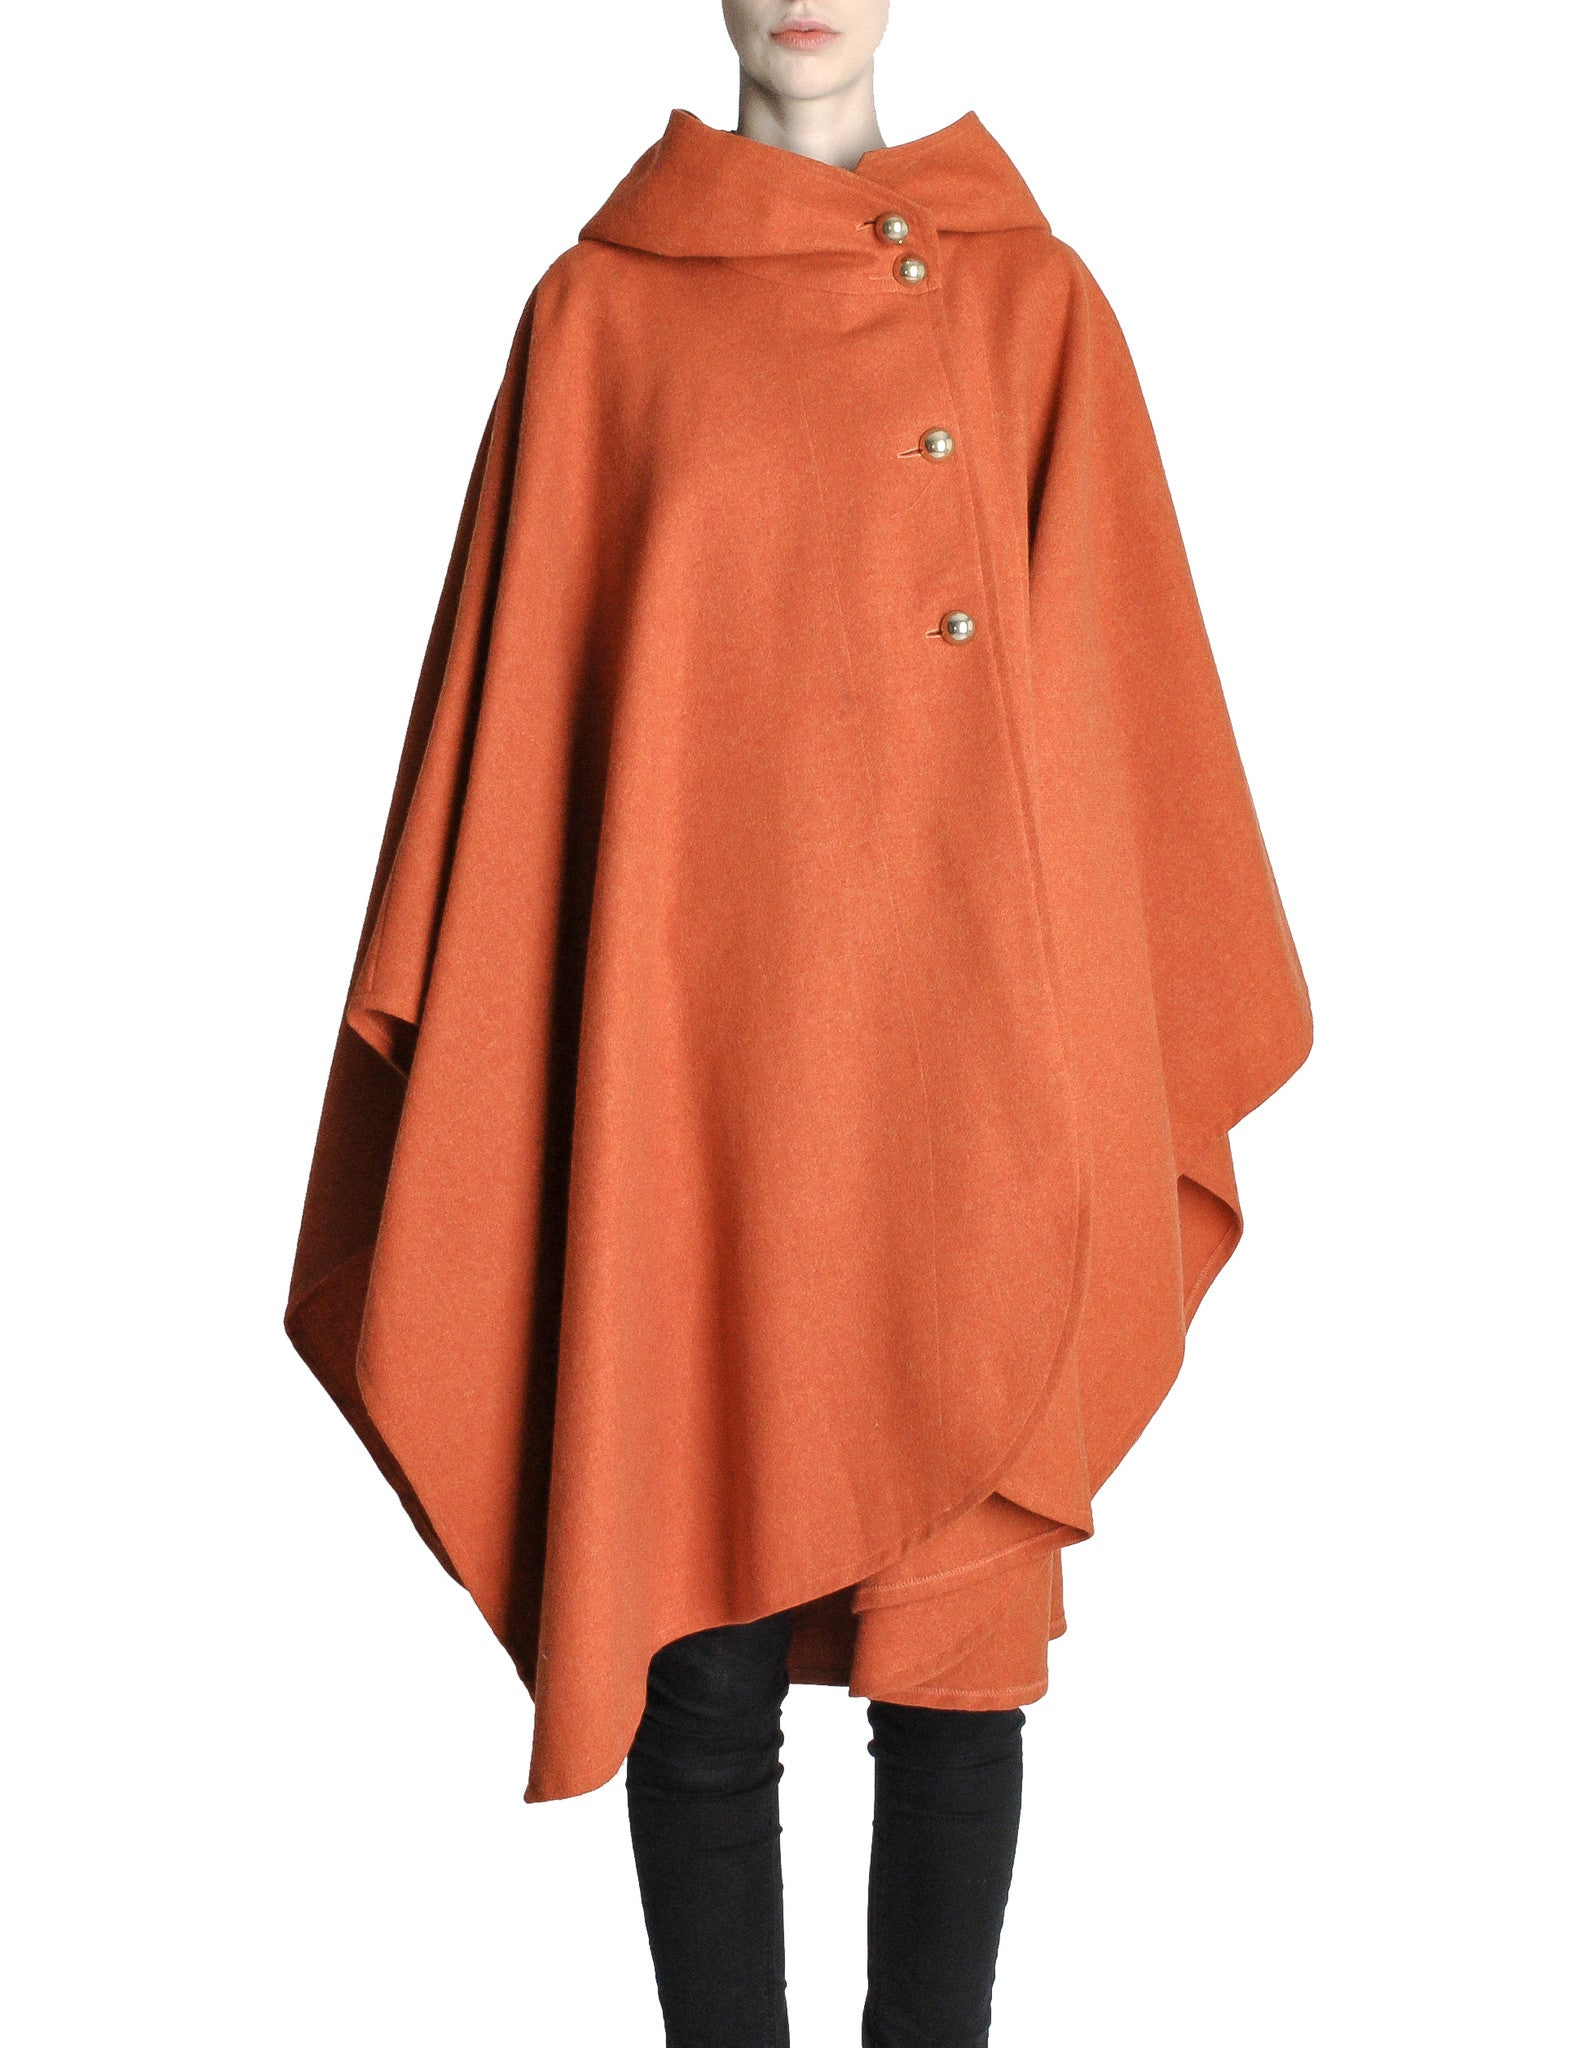 Mariantonia Vintage 1960s Orange Wool Hooded Cape - Amarcord Vintage Fashion  - 1